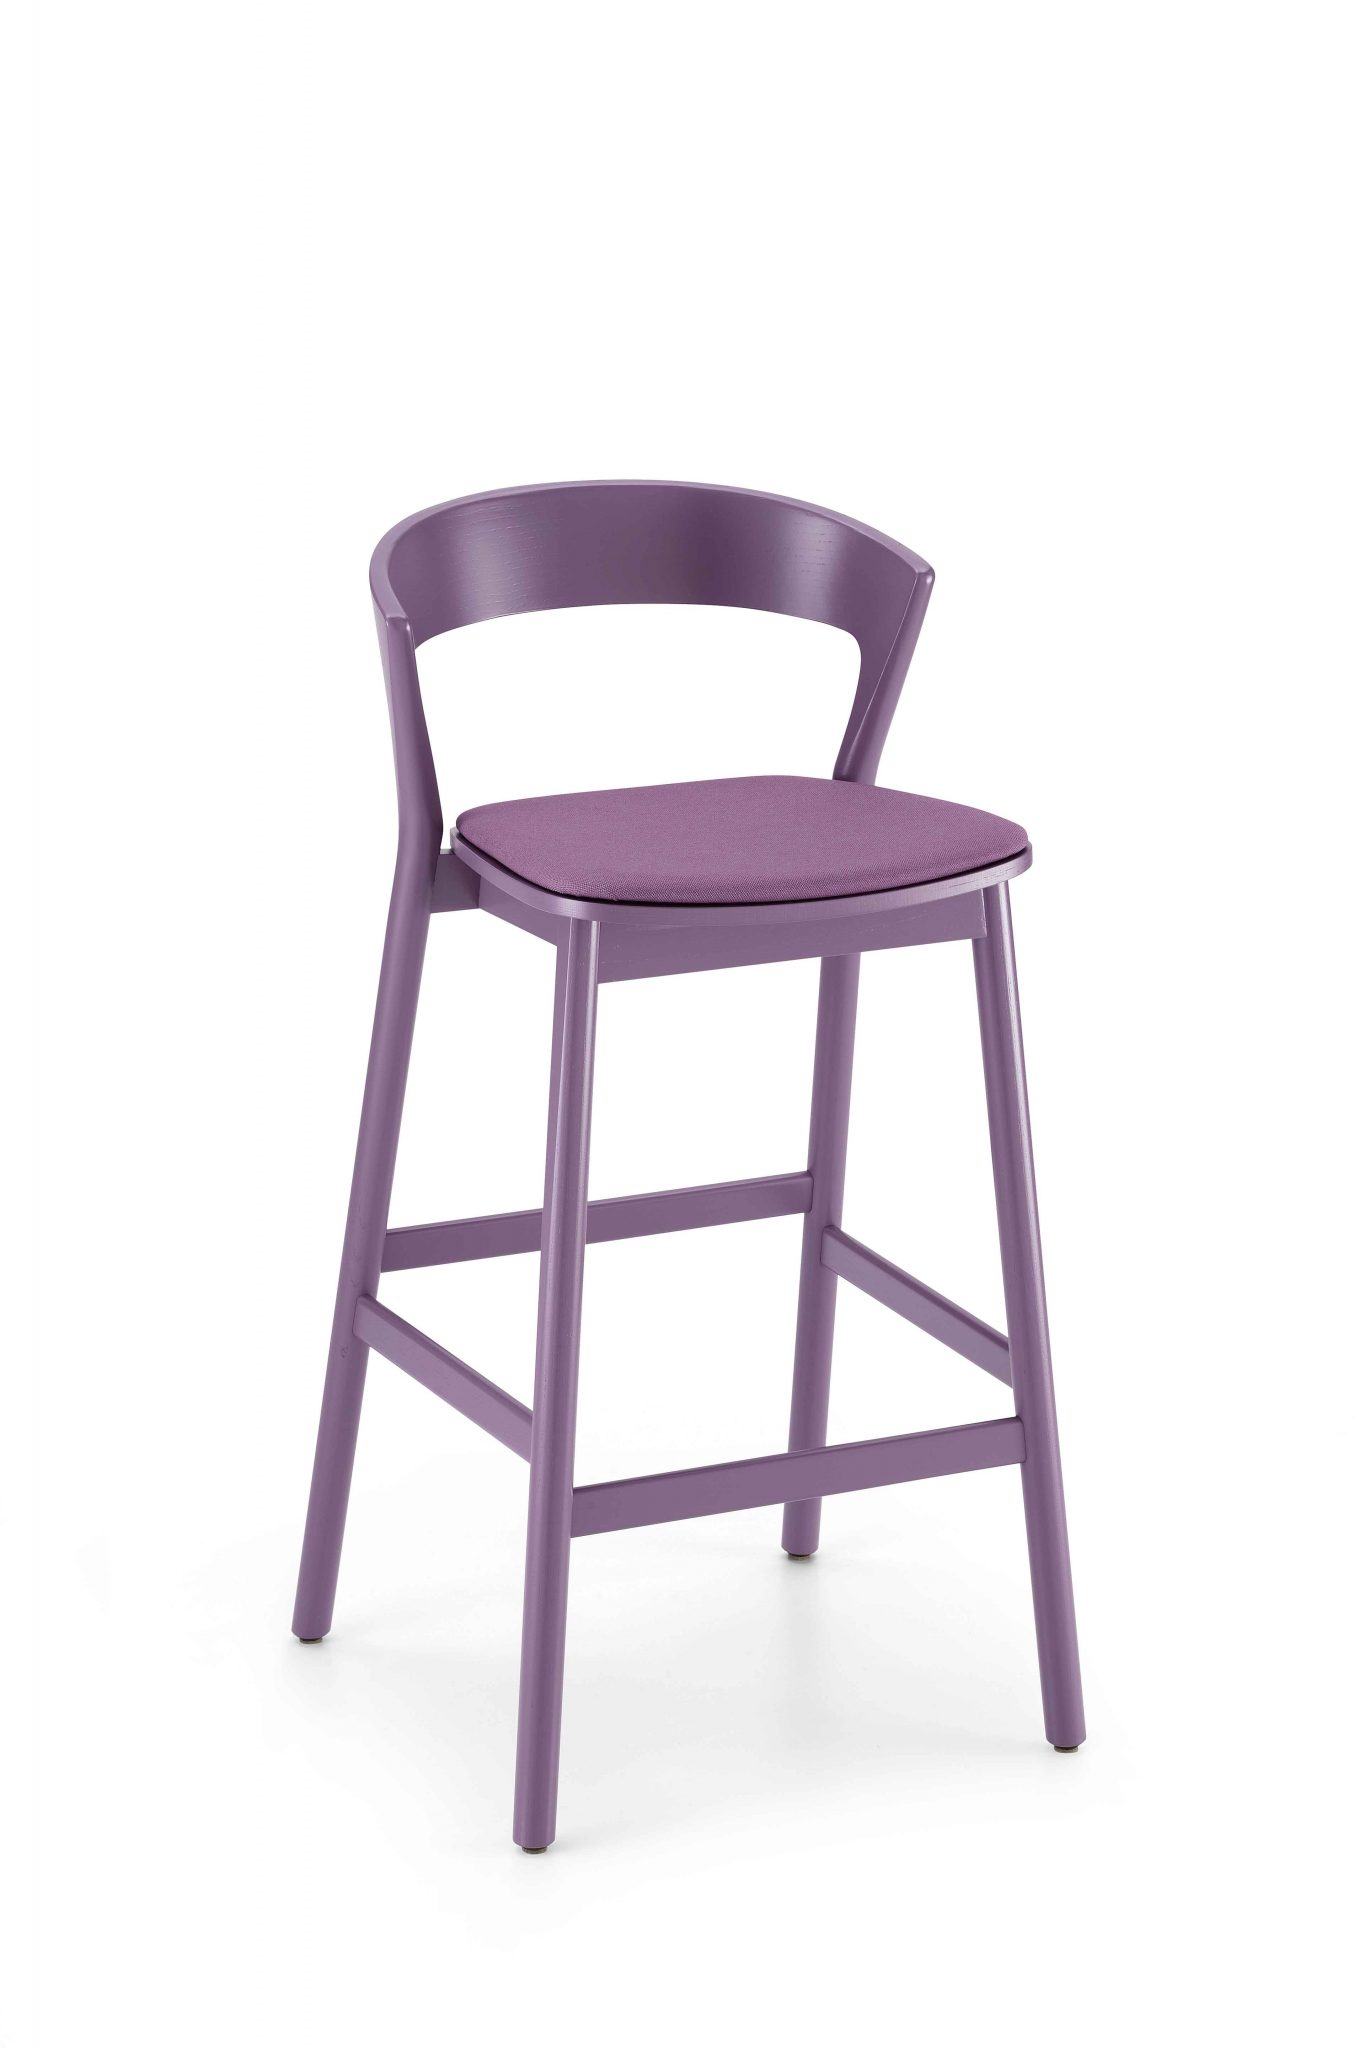 0075-IMB-EDITH-stool-in - wood-frame-and-padded-seat -, - stool-with-structure-in-wood-and-seat-padded